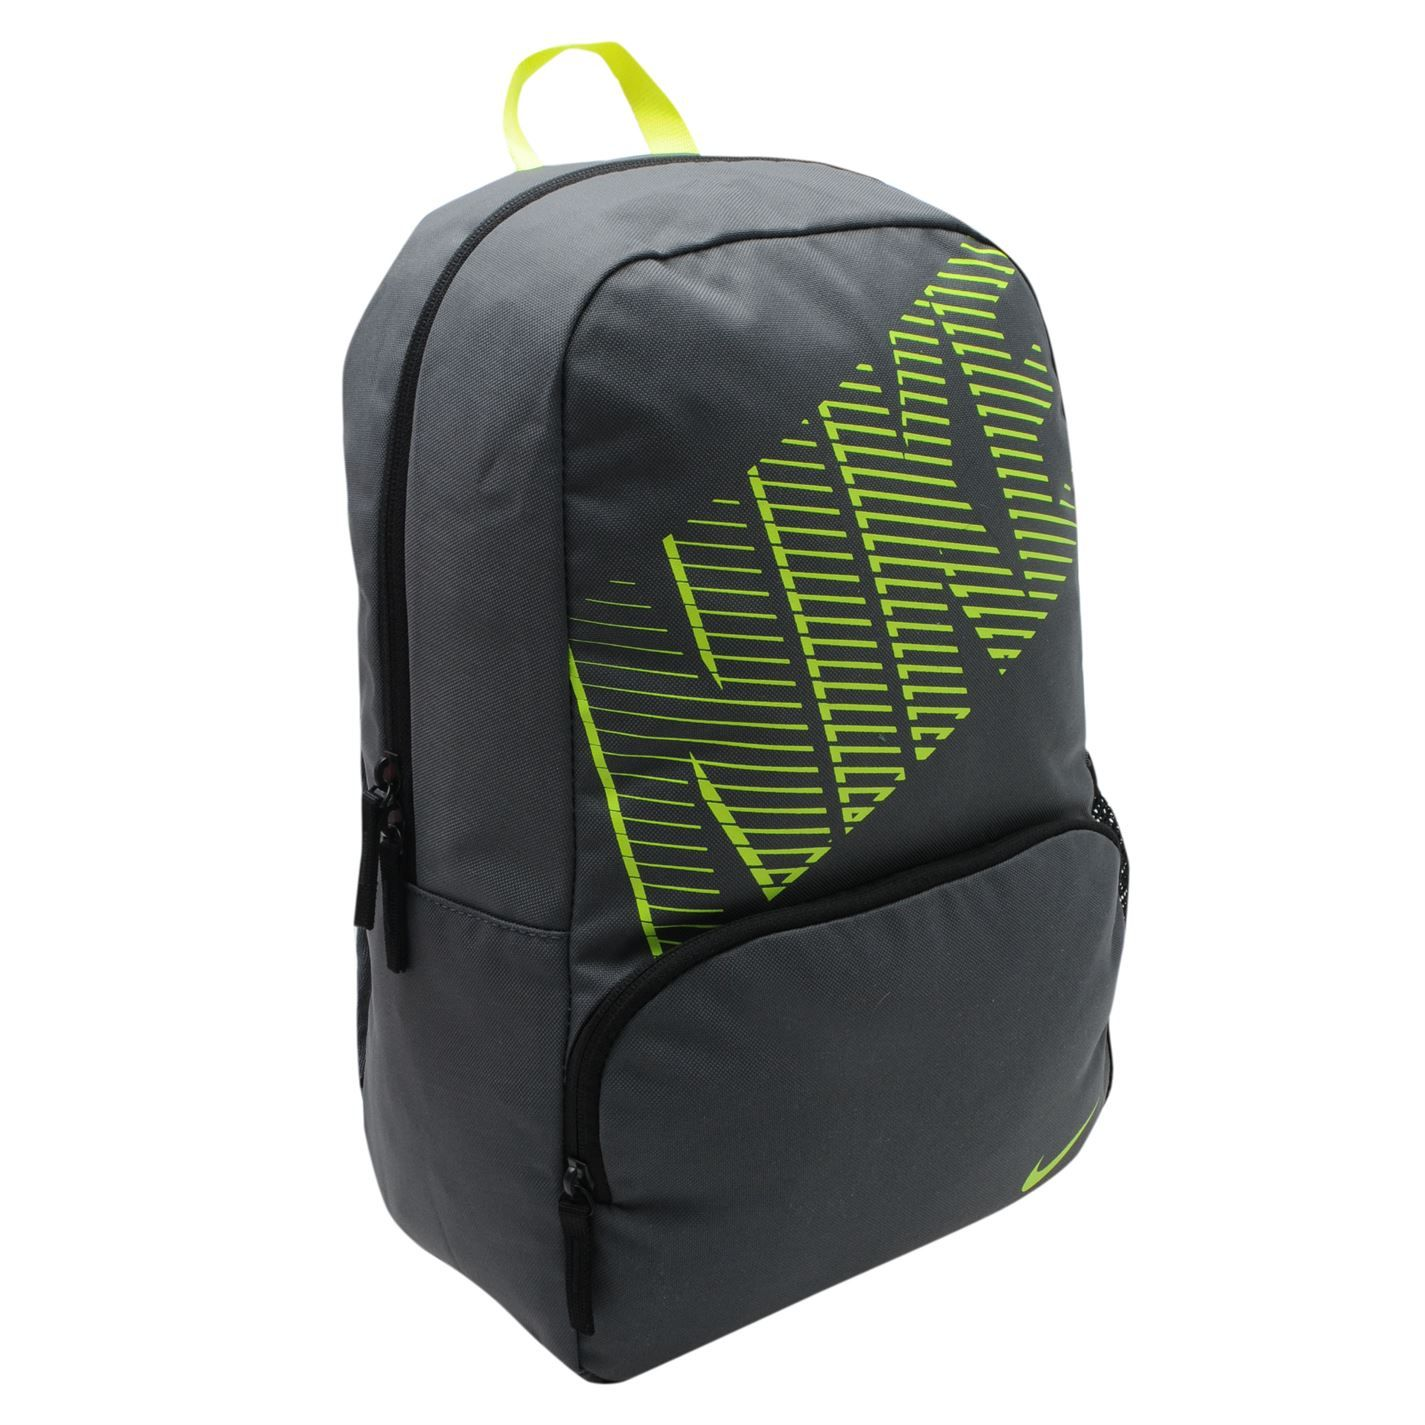 Nike Class Turf B Pack53 - SportsDirect.com Back To School Bags bcc619be8dbe2